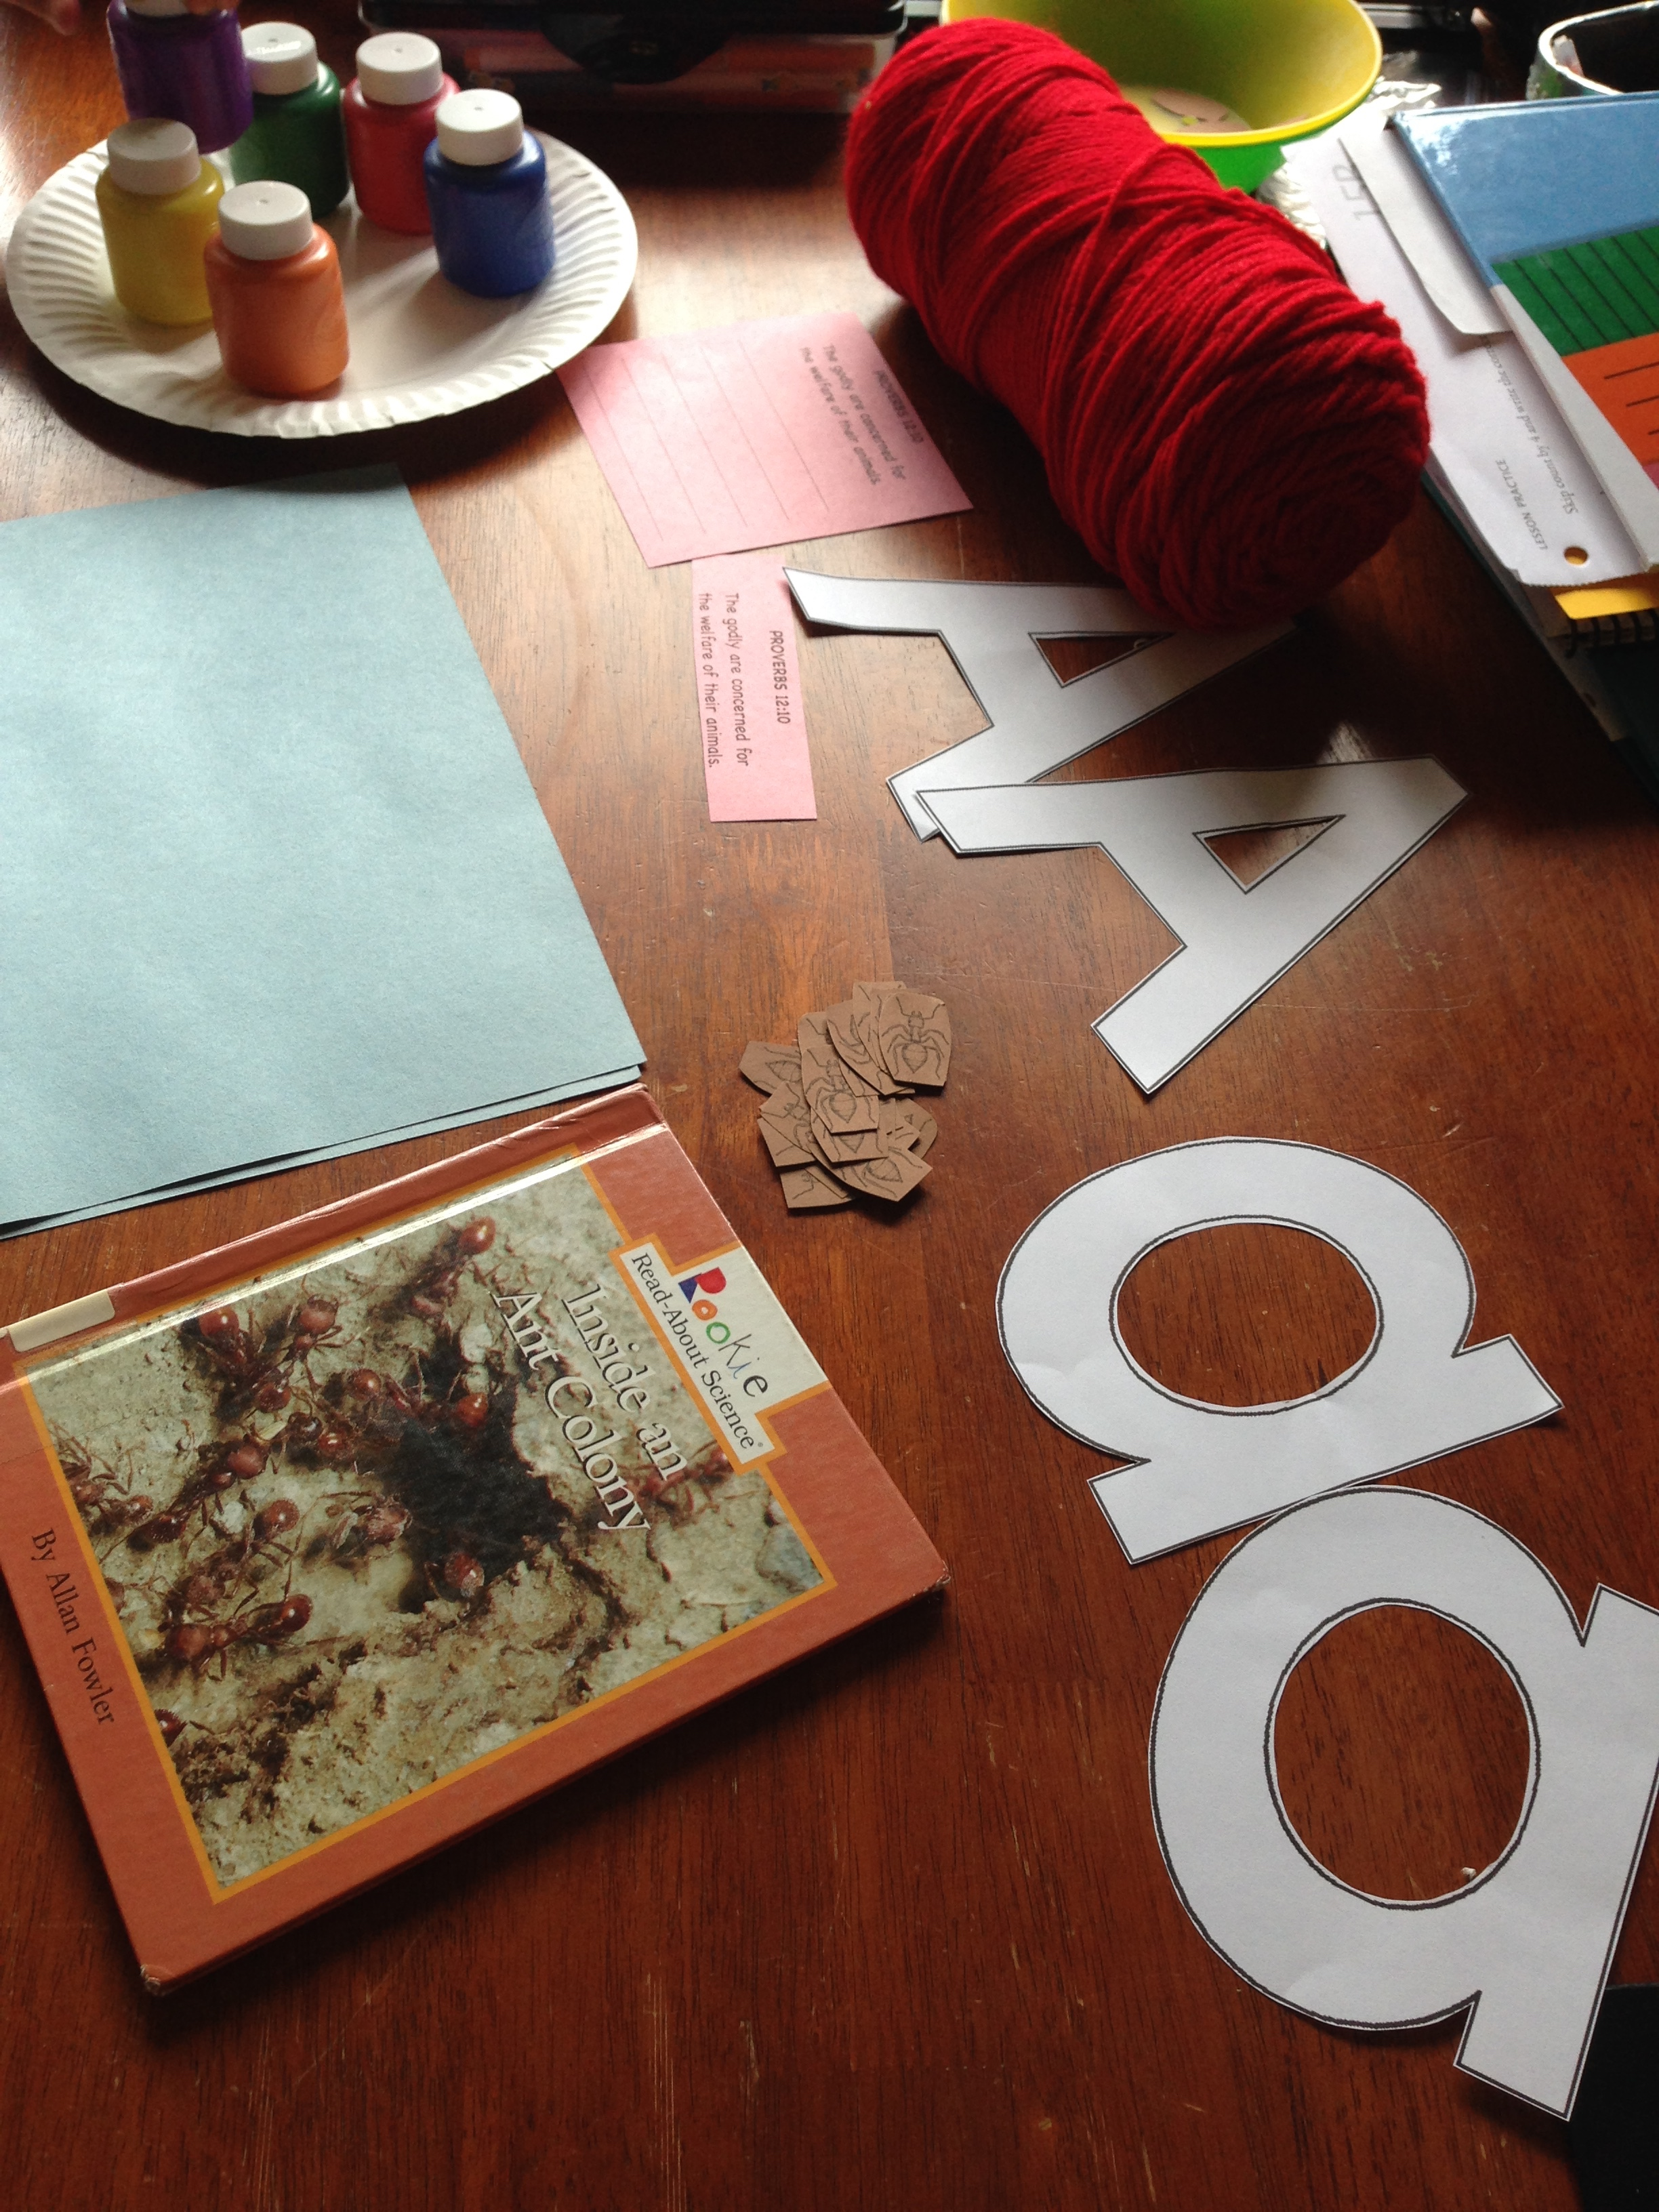 A few minutes cutting the a's, and making the ant book, yarn, paint, and construction paper handy helped prepare for a smooth day.